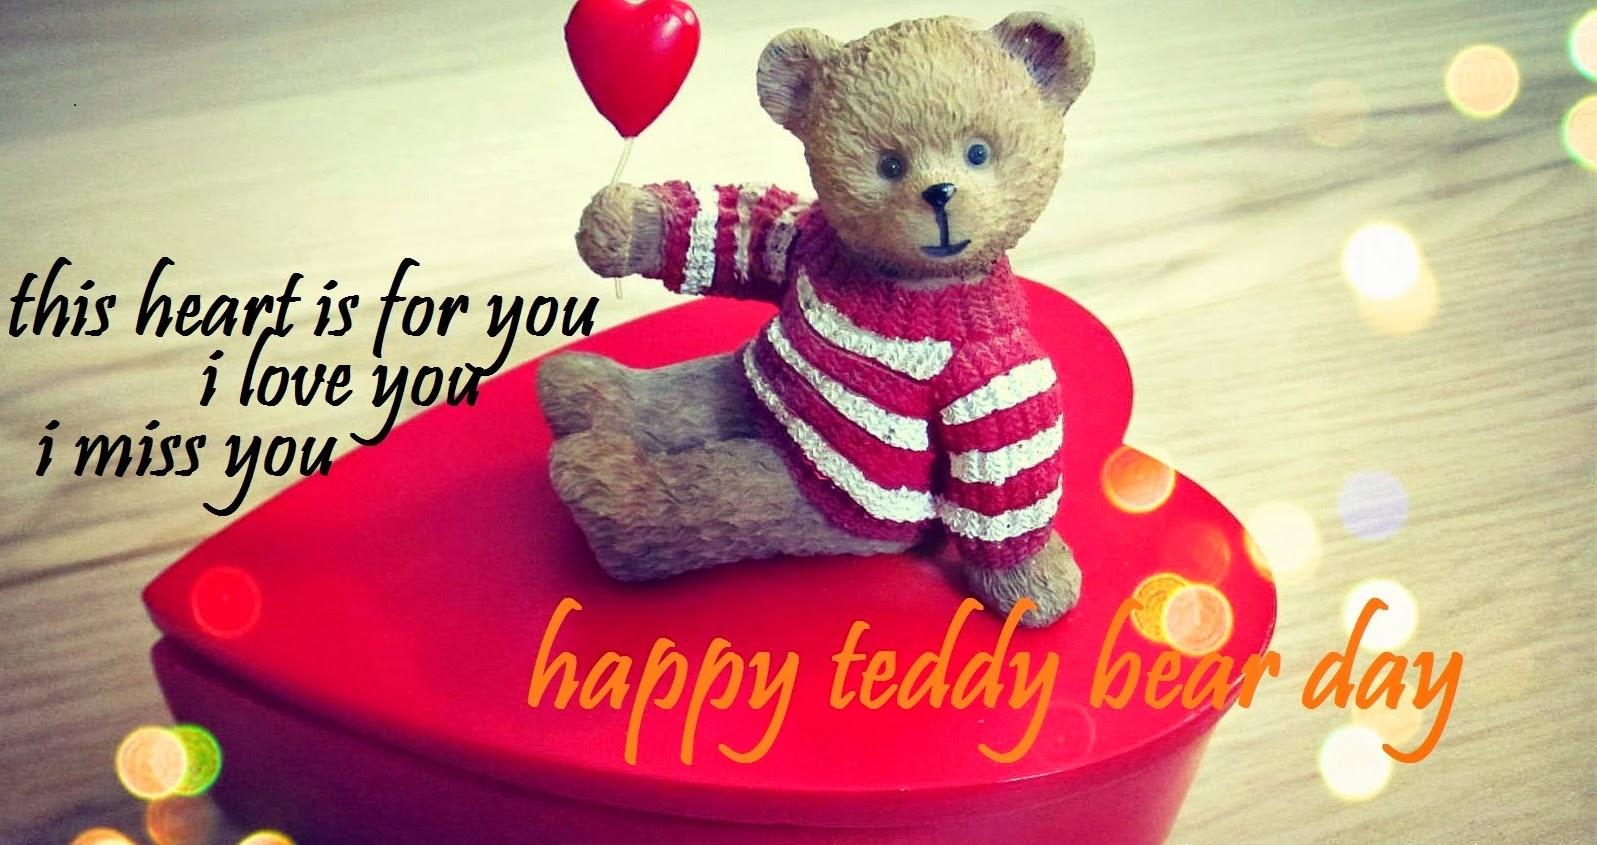 Happy Valentines Day 2016 Happy Valentines Day Wishes Sayings – Happy Valentines Day 2015 Cards